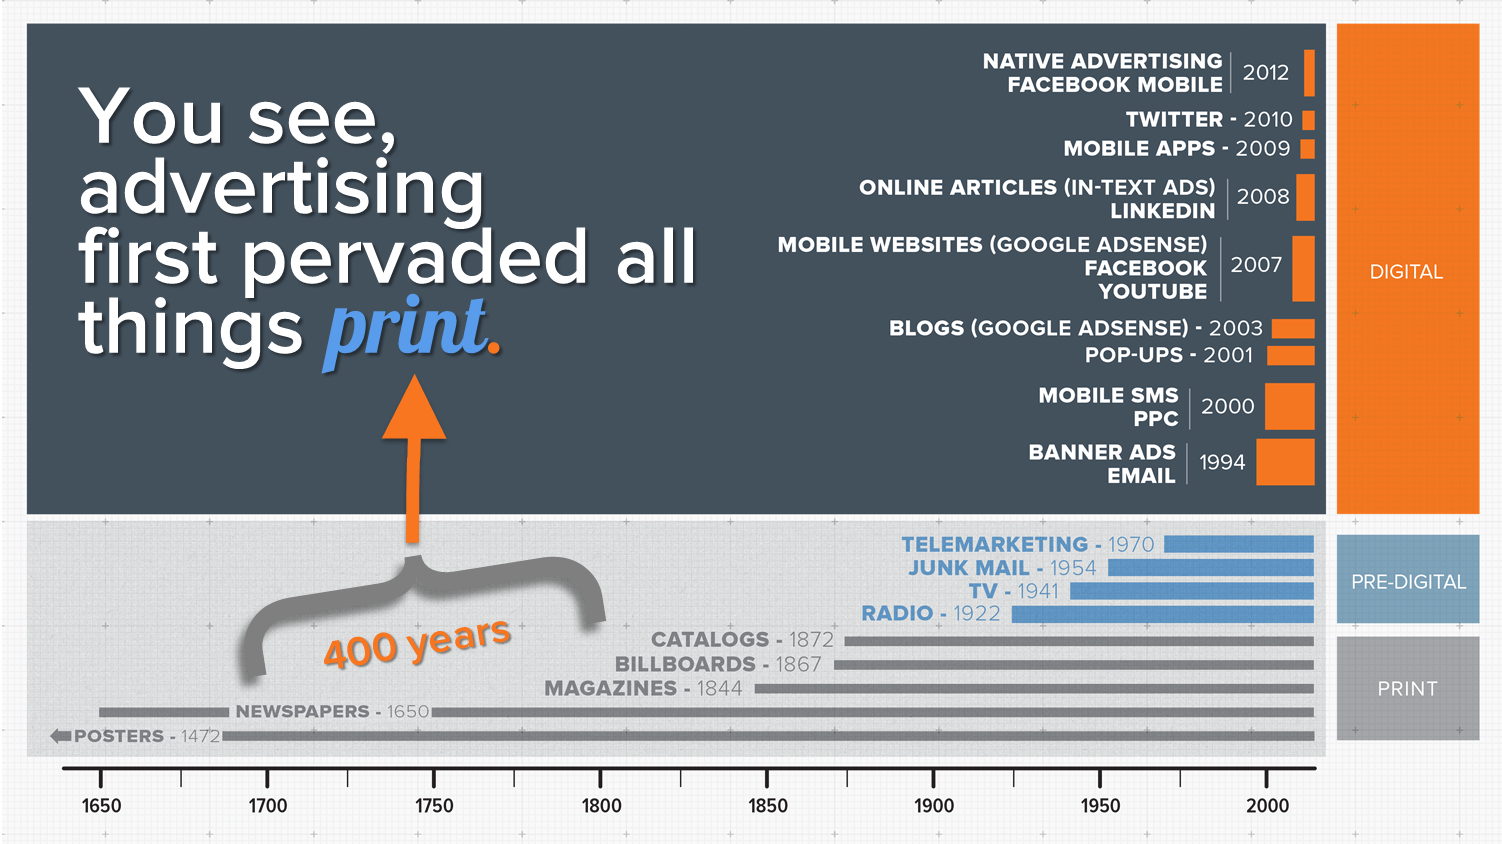 invasion_of_advertising_timeline_print_period